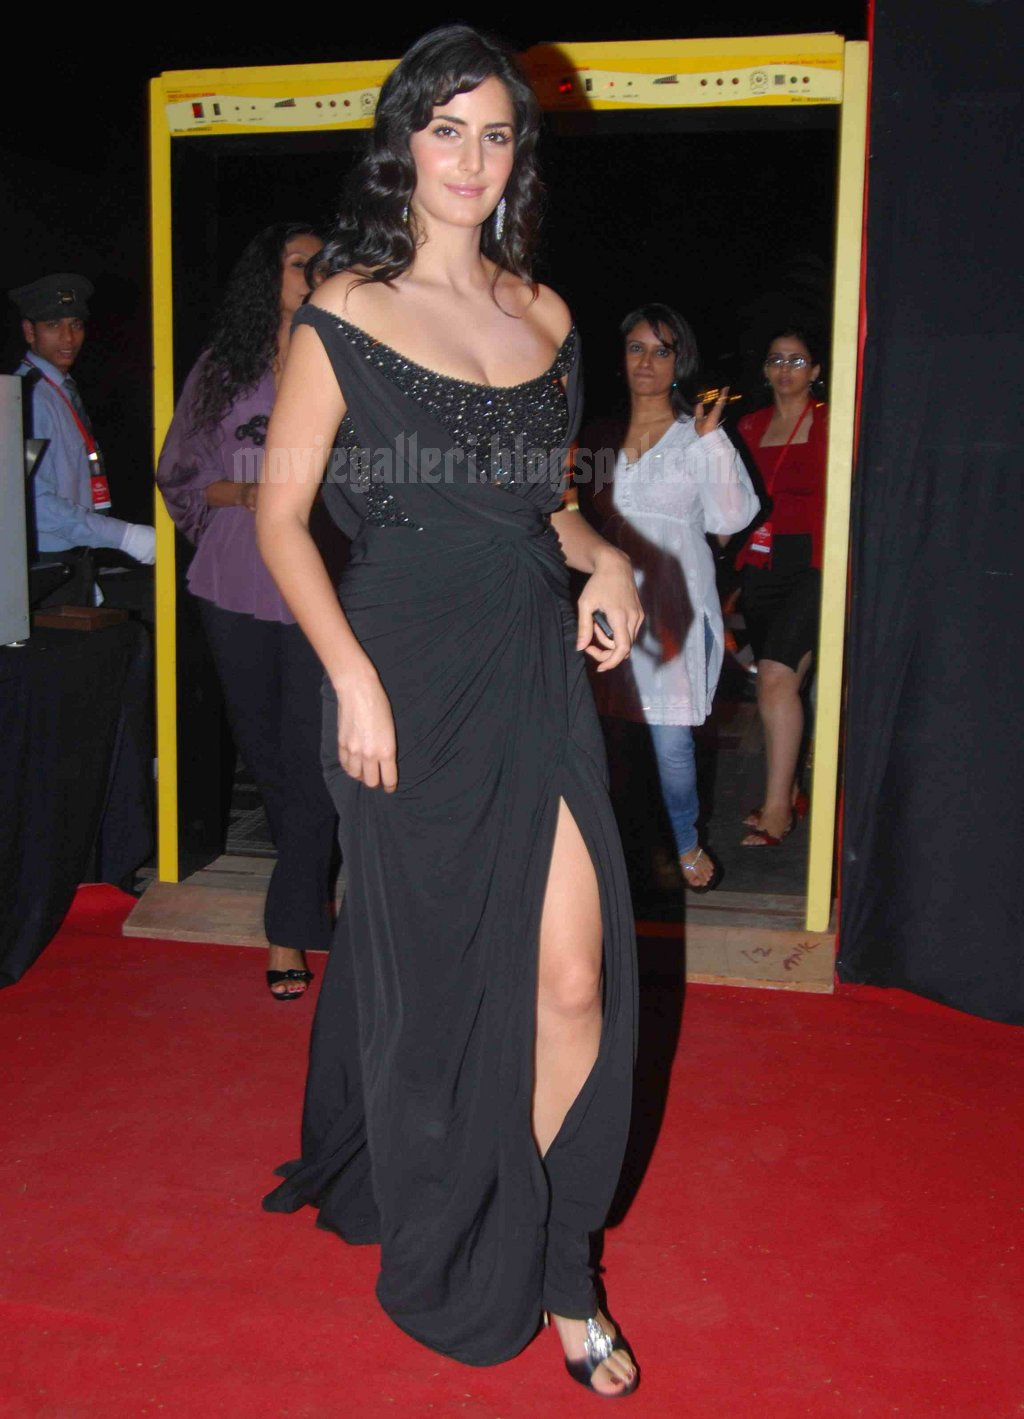 Hot Katrina Kaif At Triumph Show 2009 Wallpapers, Pics -7219